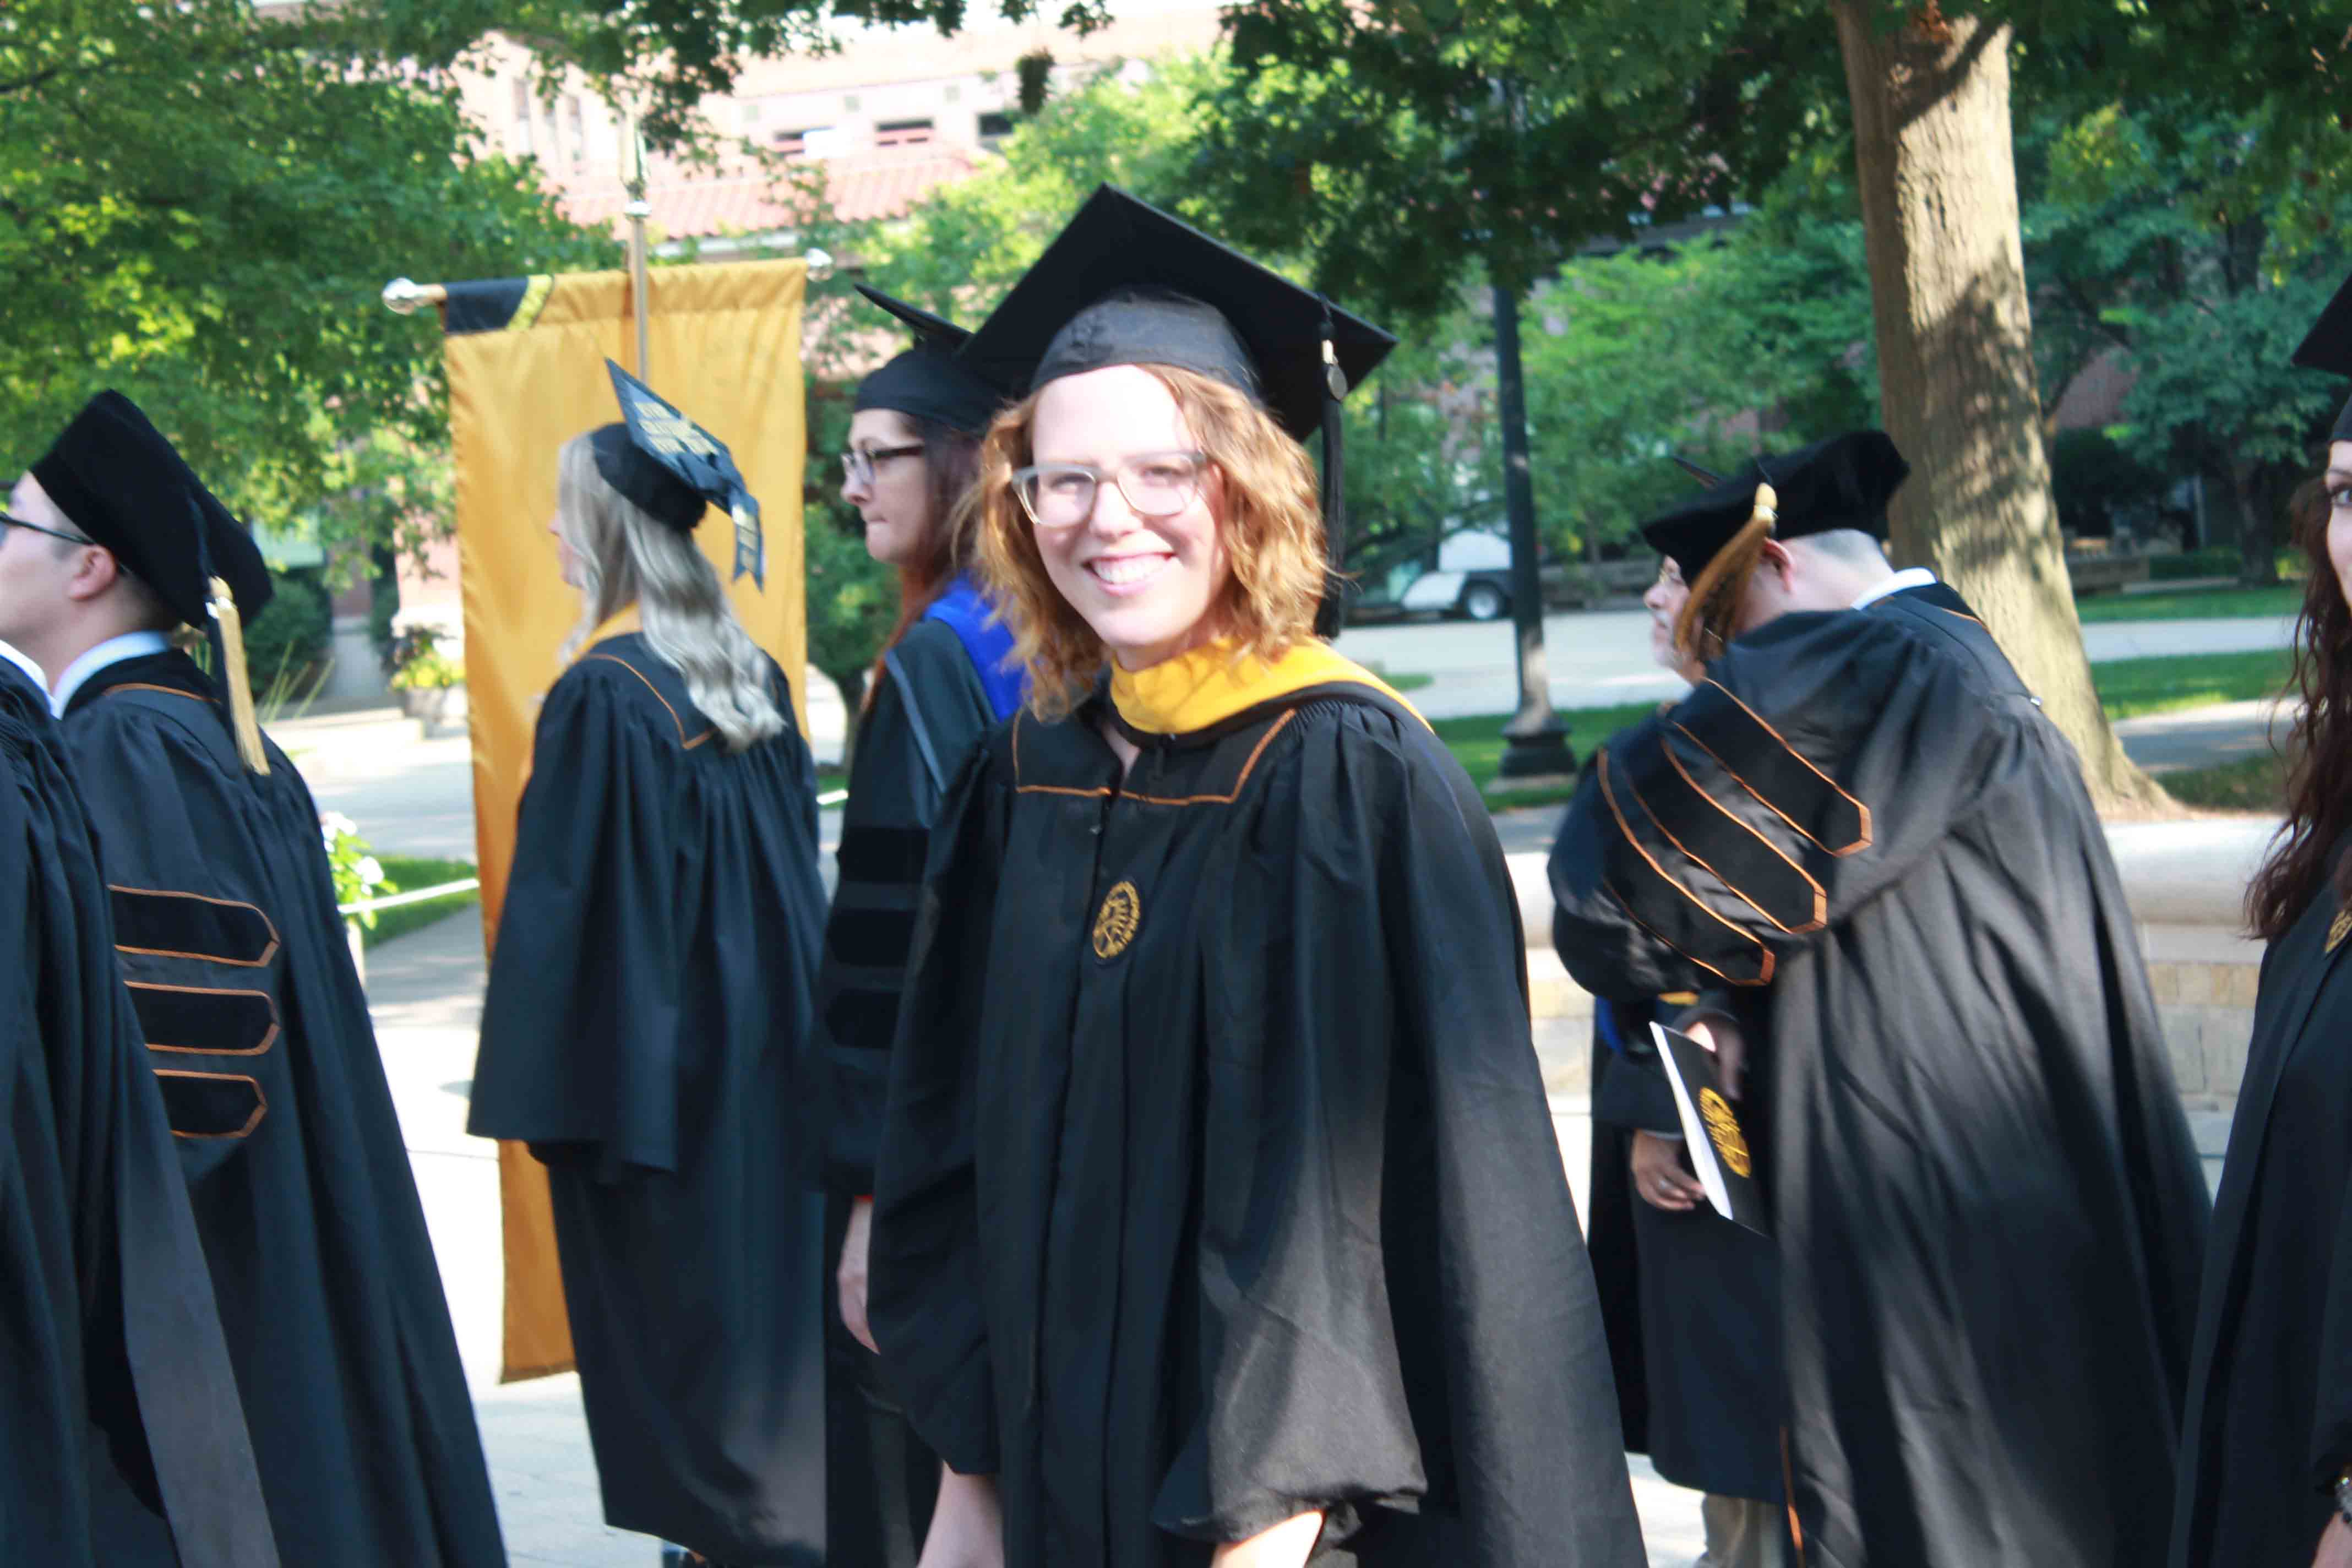 Woman smiling in line for graduate procession